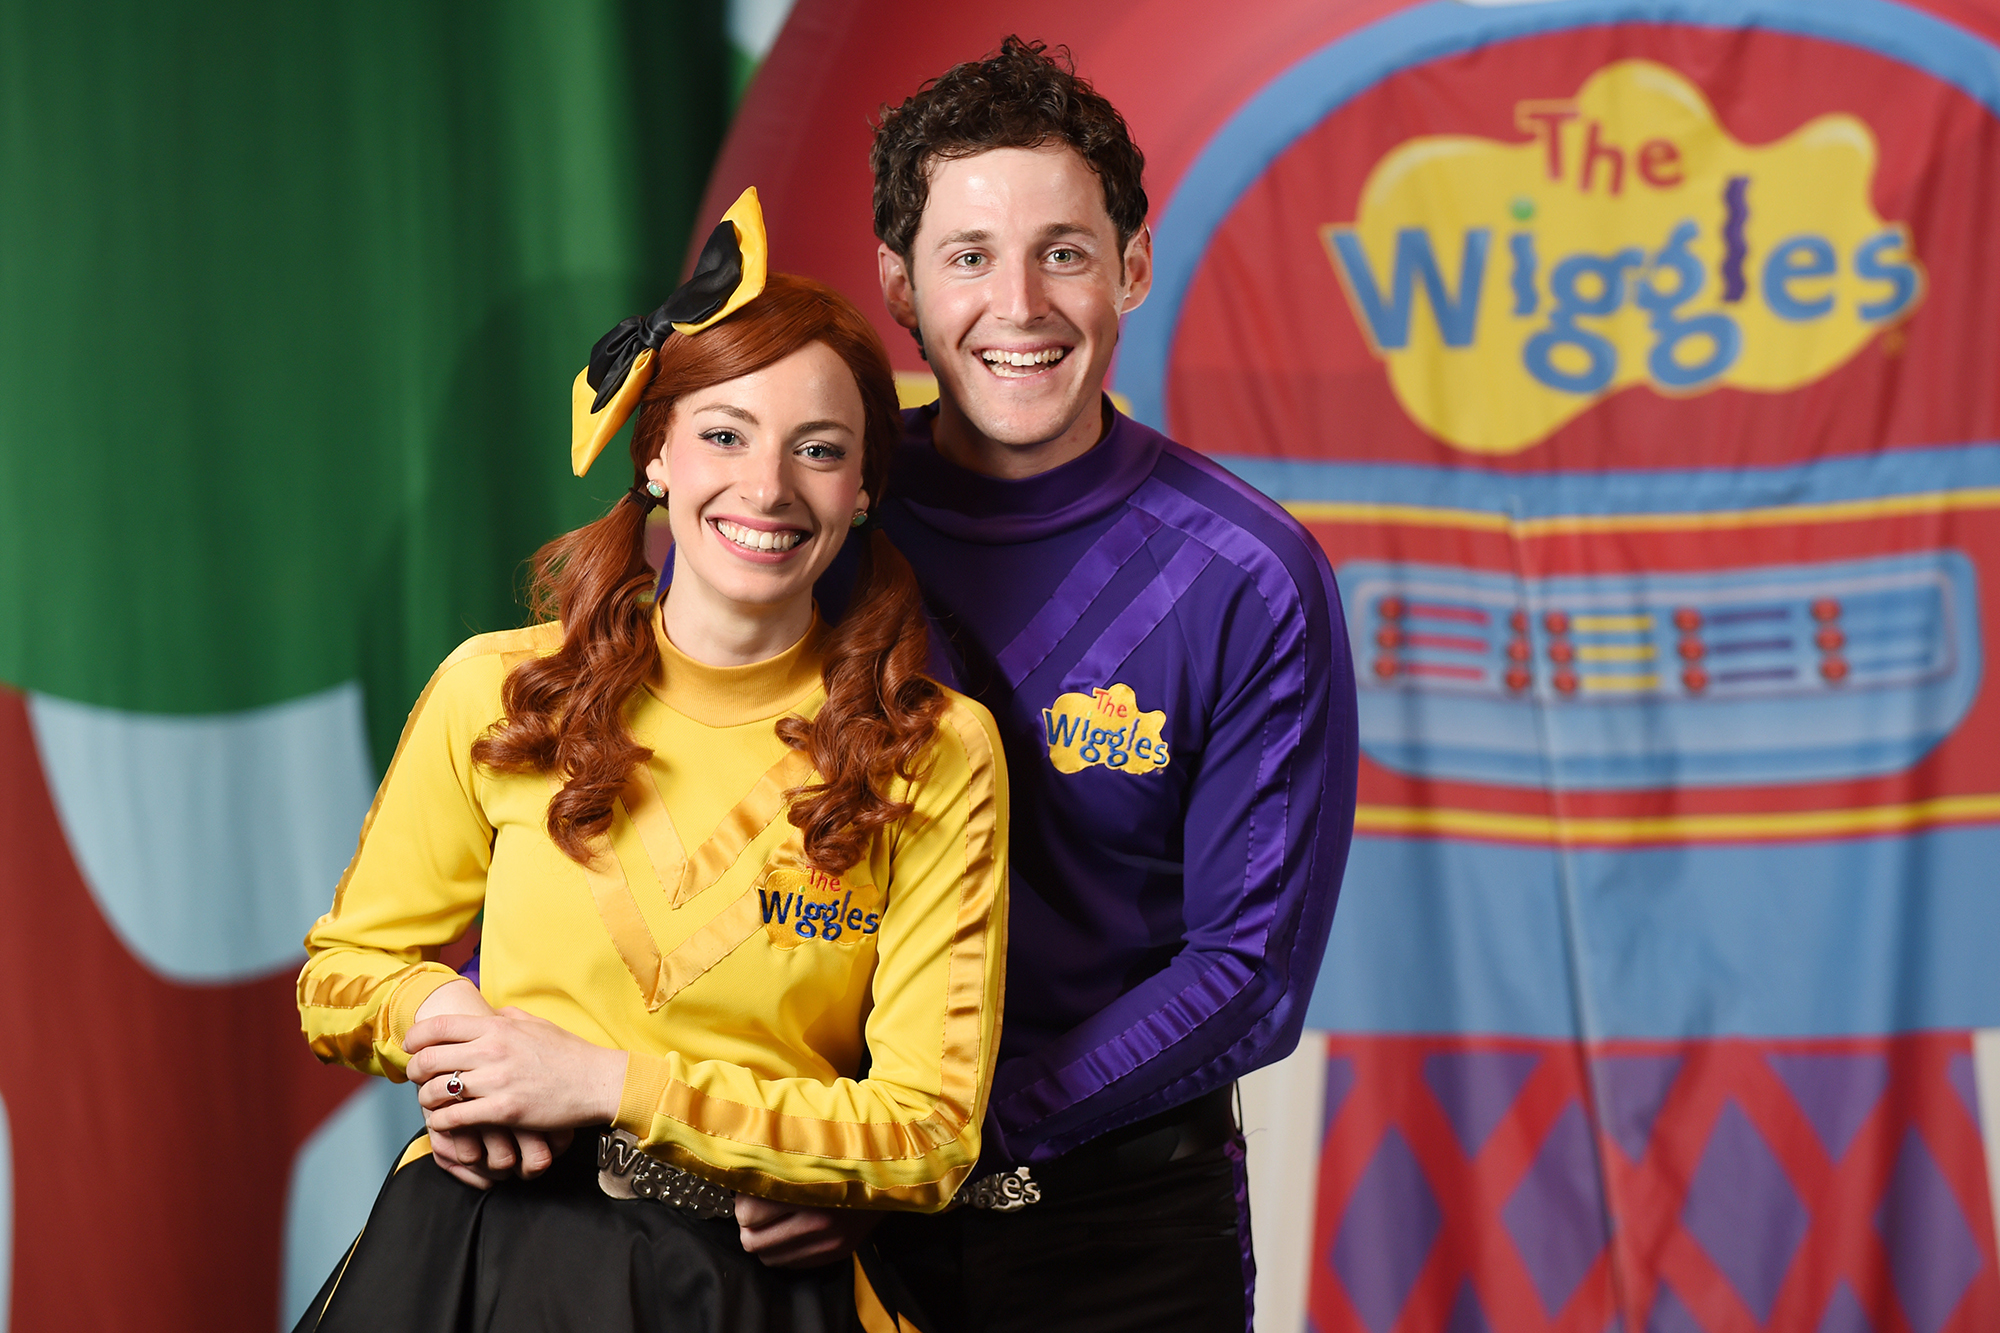 The Wiggles' Lachlan Gillespie & Emma Watkins Announce Engagement